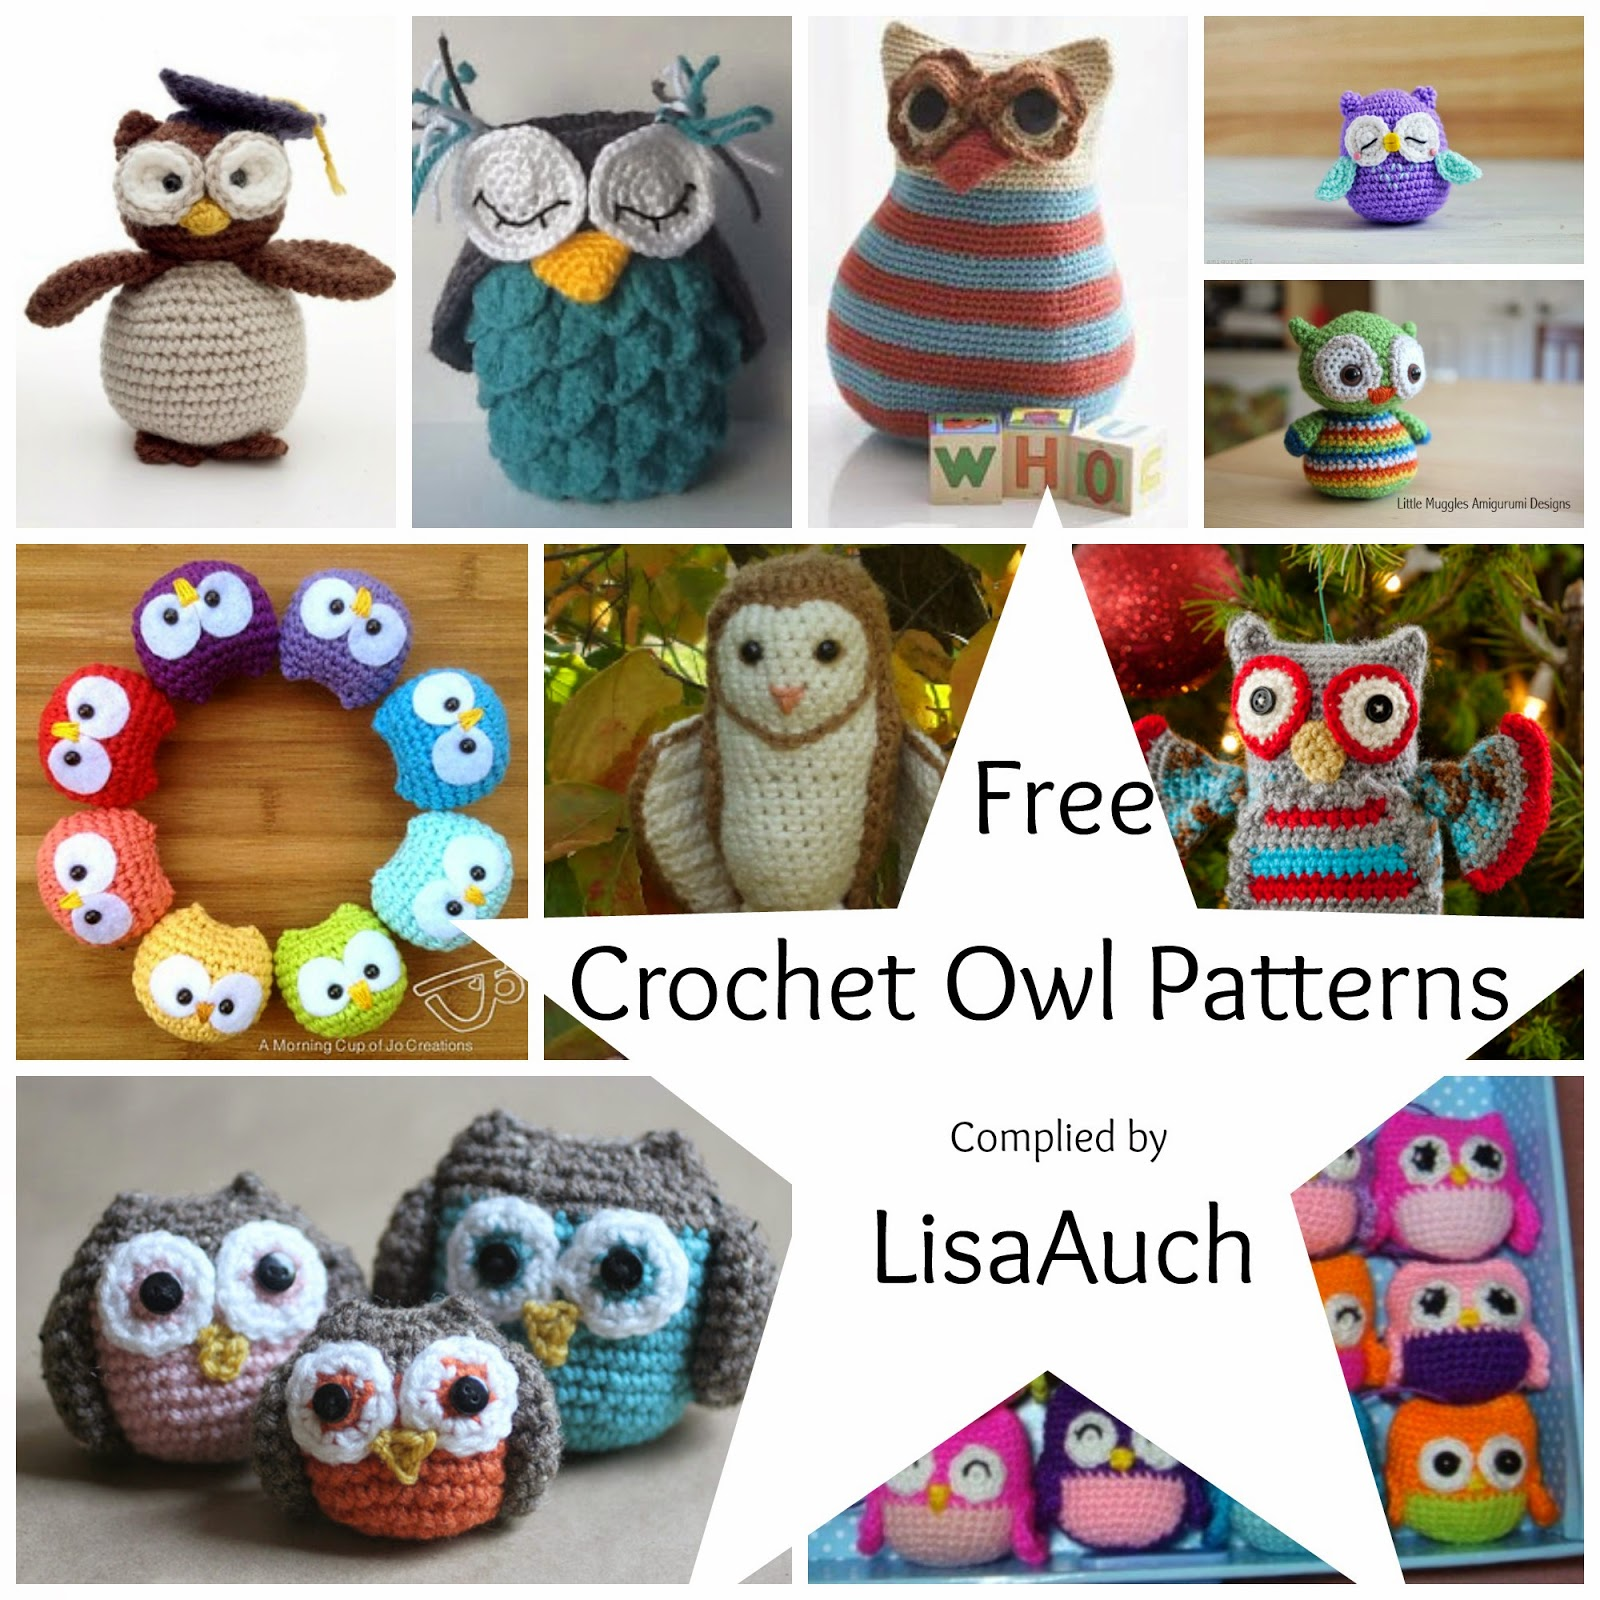 Free Crochet Owl Patterns Free Crochet Patterns Owl Patterns Owl amigurumi toy patternsFree Crochet Patterns Owls Owl amigurumi toy patterns